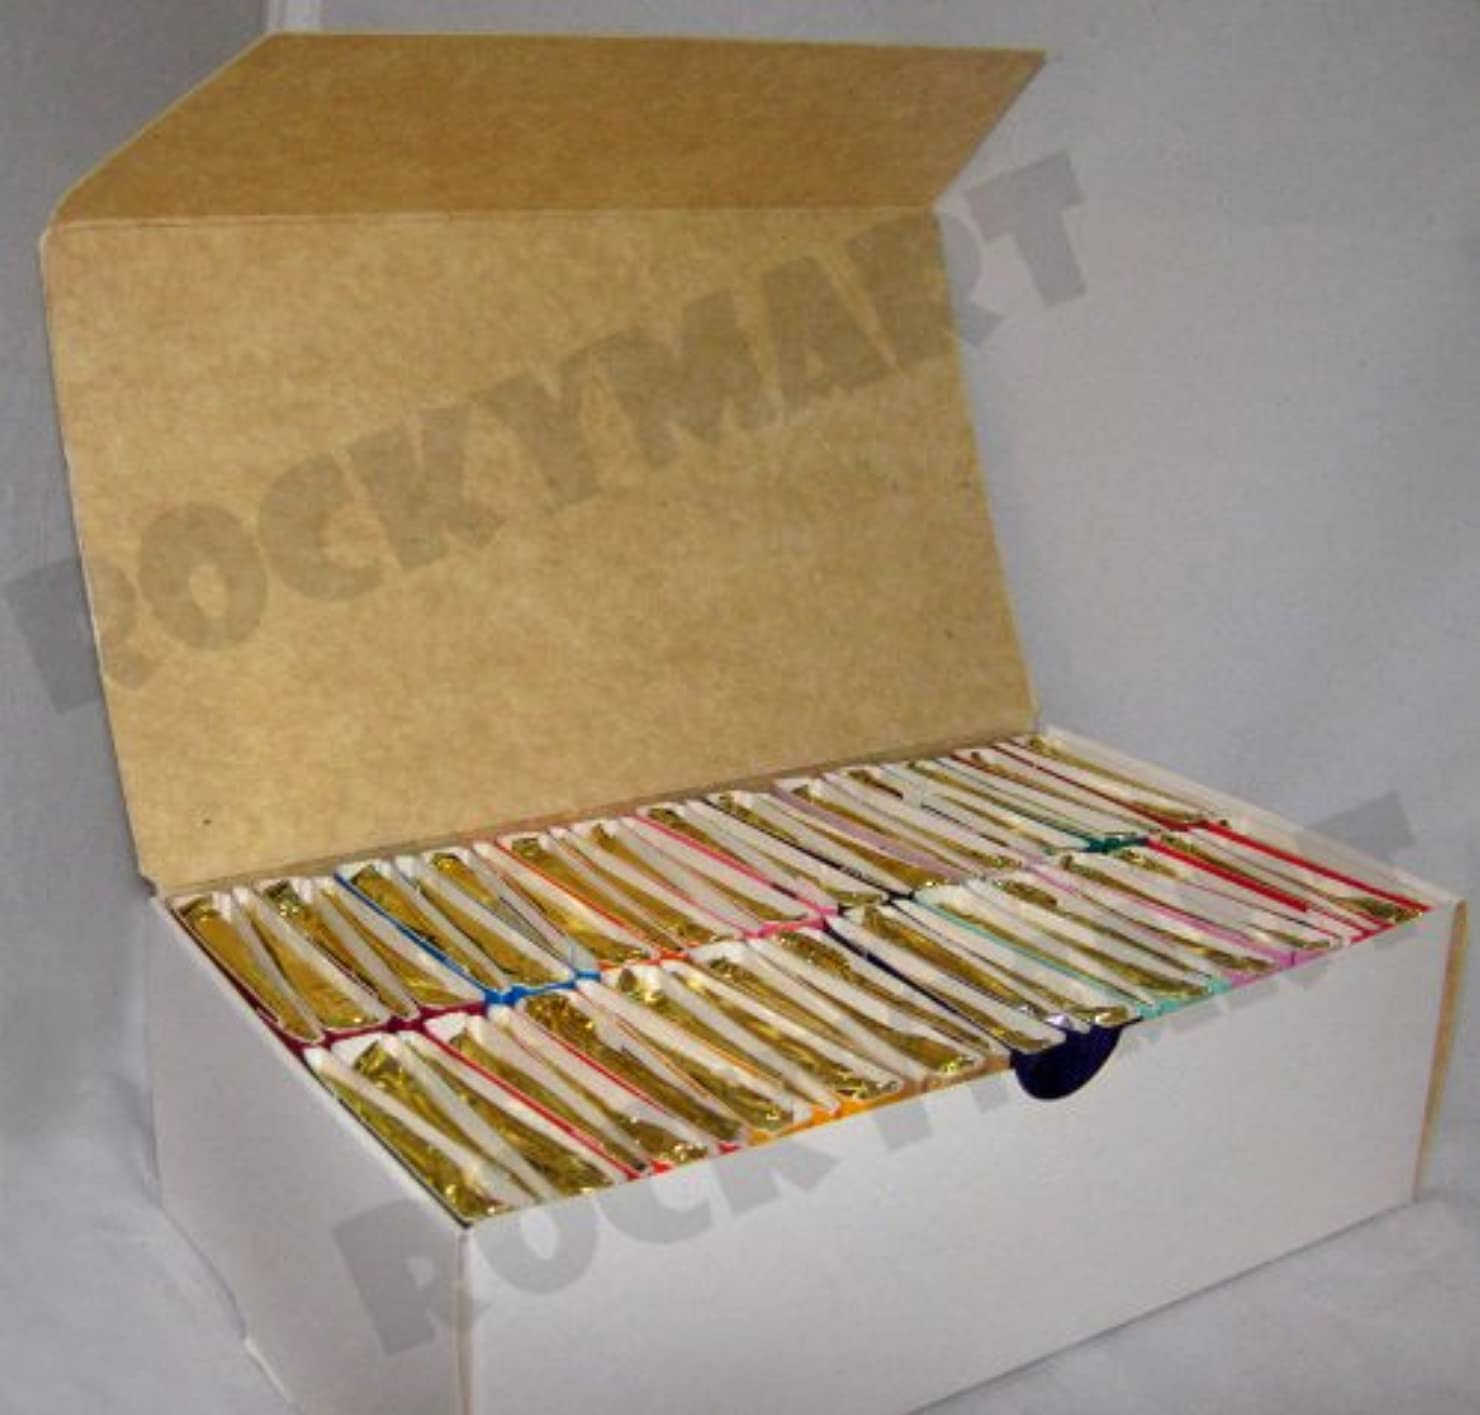 Box of 50 Books of Incense Matches - 16 Fragrances - Assorted - Scent Match